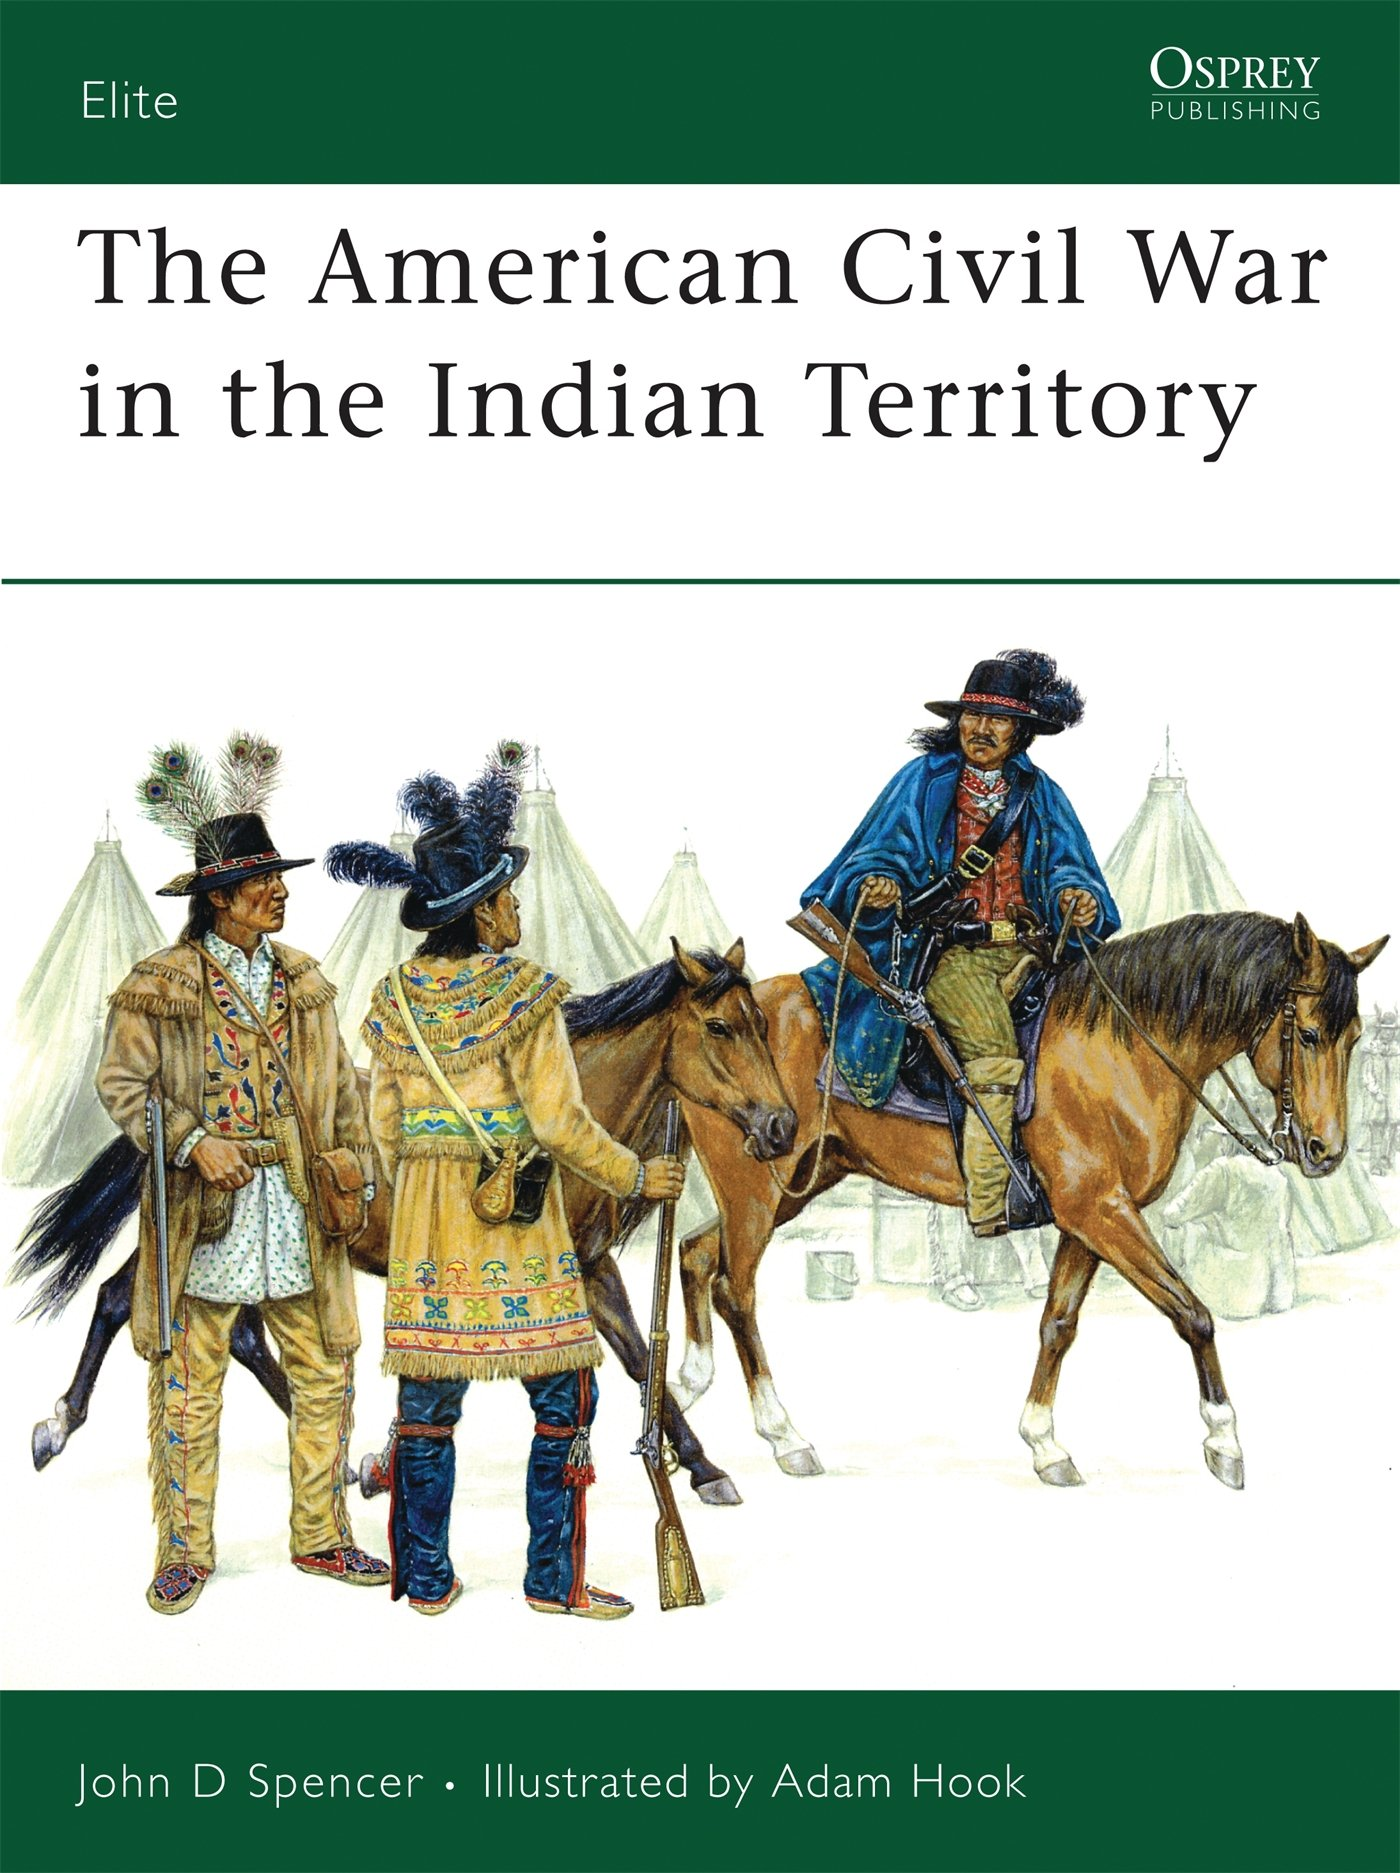 The American Civil War in the Indian Territory: No. 140 Elite ...